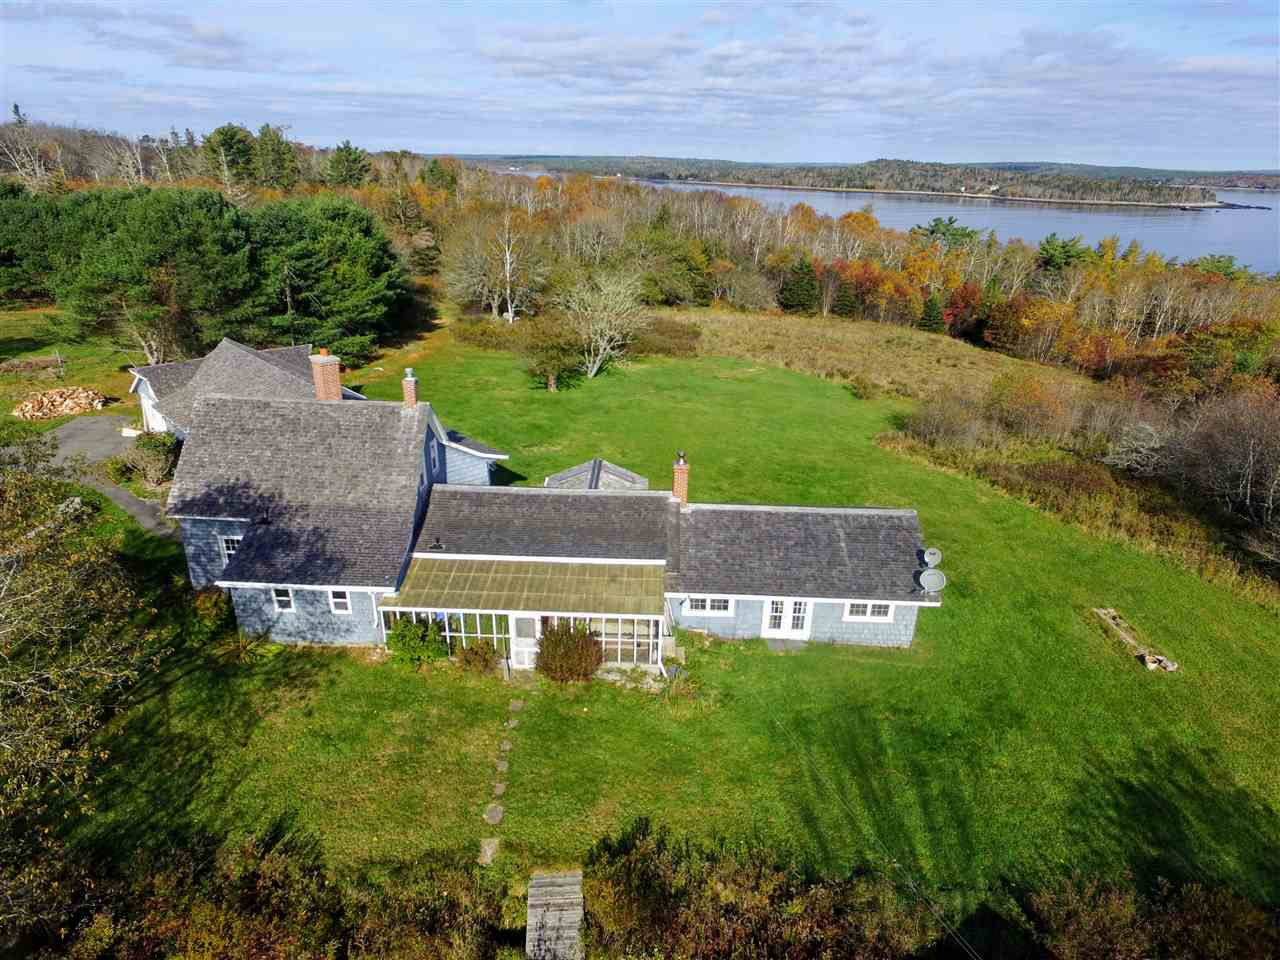 Photo 5: Photos: 5132 Sandy Point Road in Jordan Ferry: 407-Shelburne County Residential for sale (South Shore)  : MLS®# 201719775